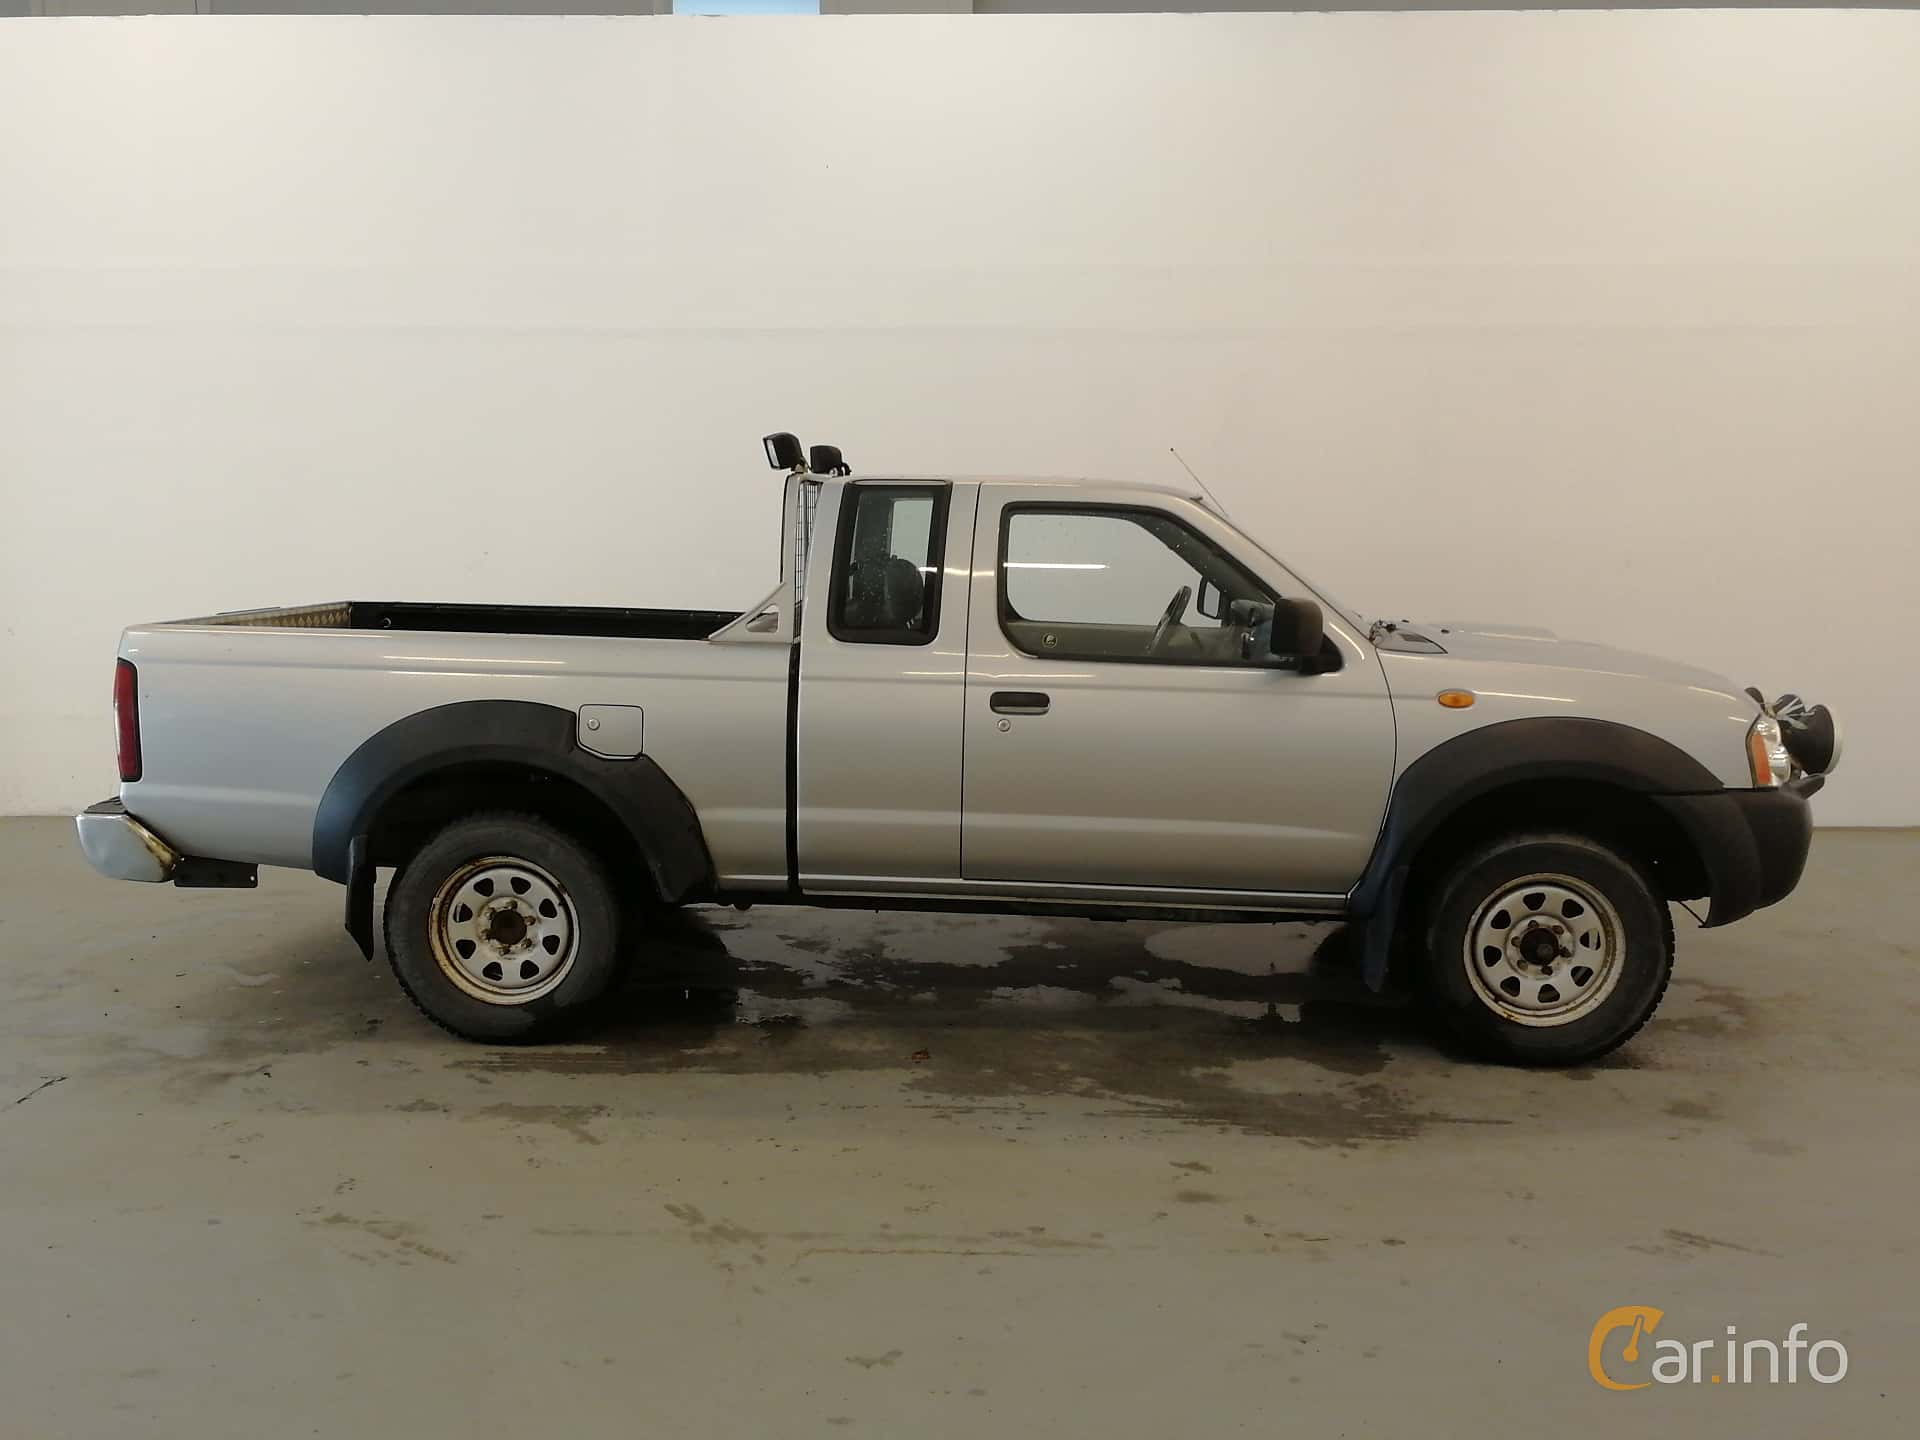 Nissan Navara King Cab generation D22 2 5 4WD Manual, 5-speed